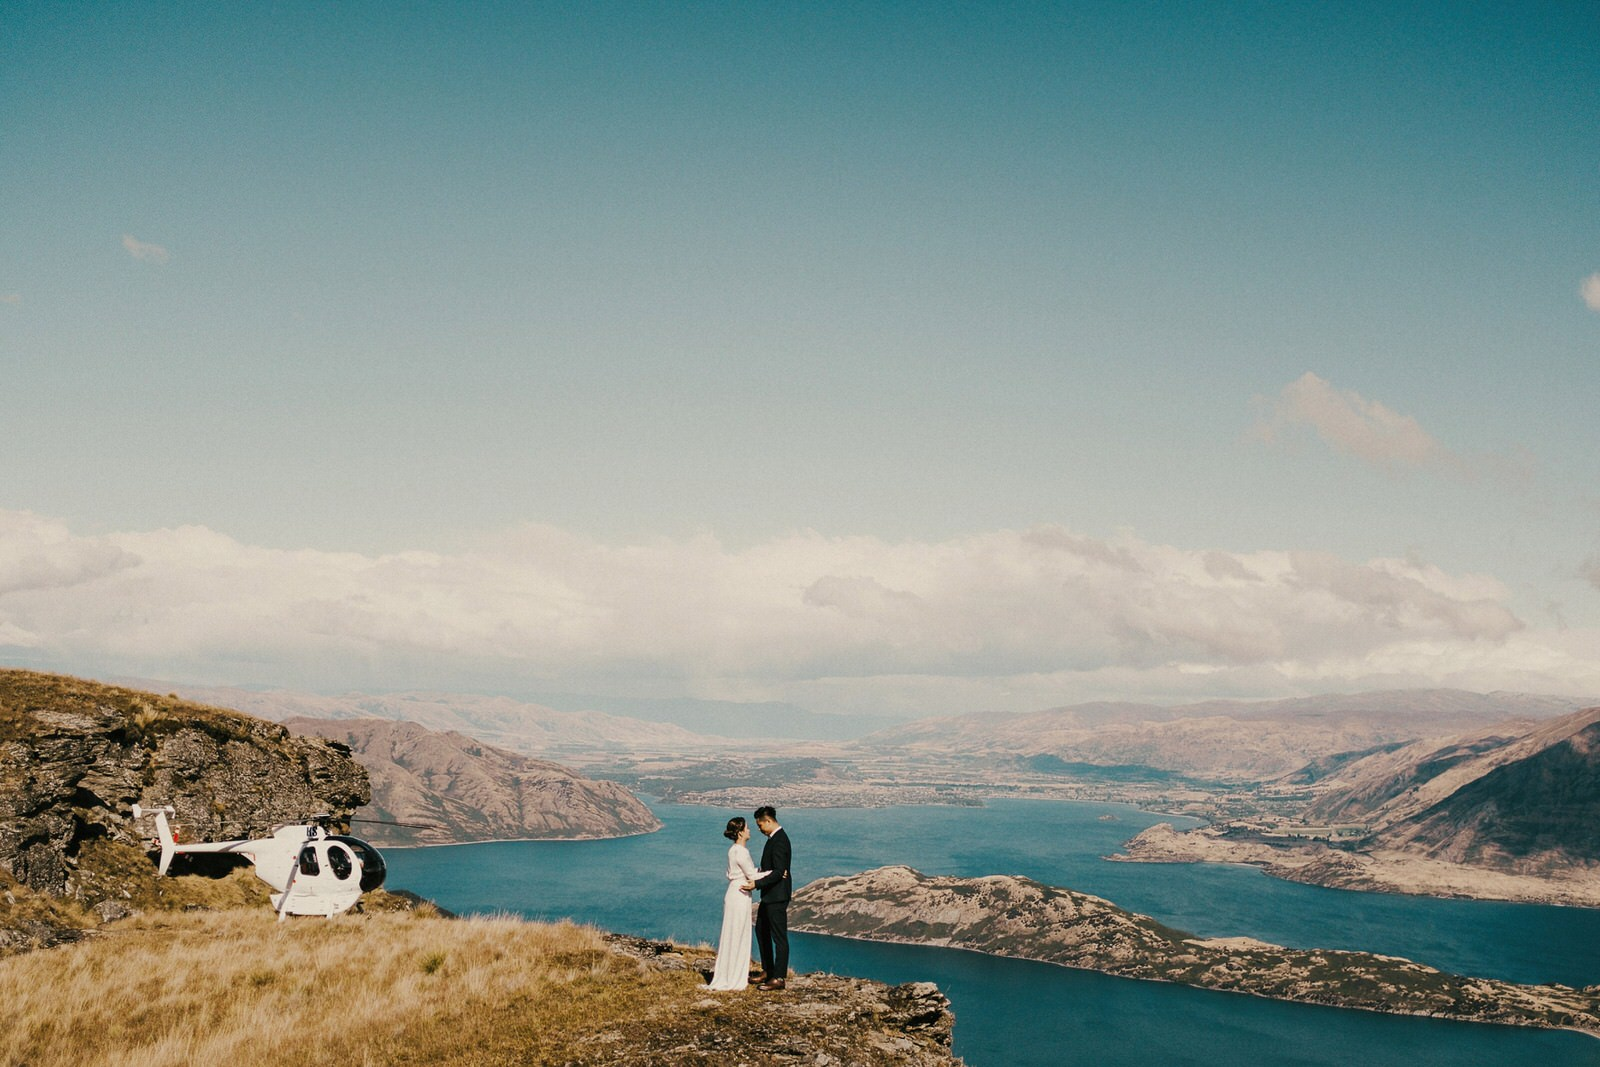 Pre-wedding photos at Look out Hill, Wanaka with Helicopter